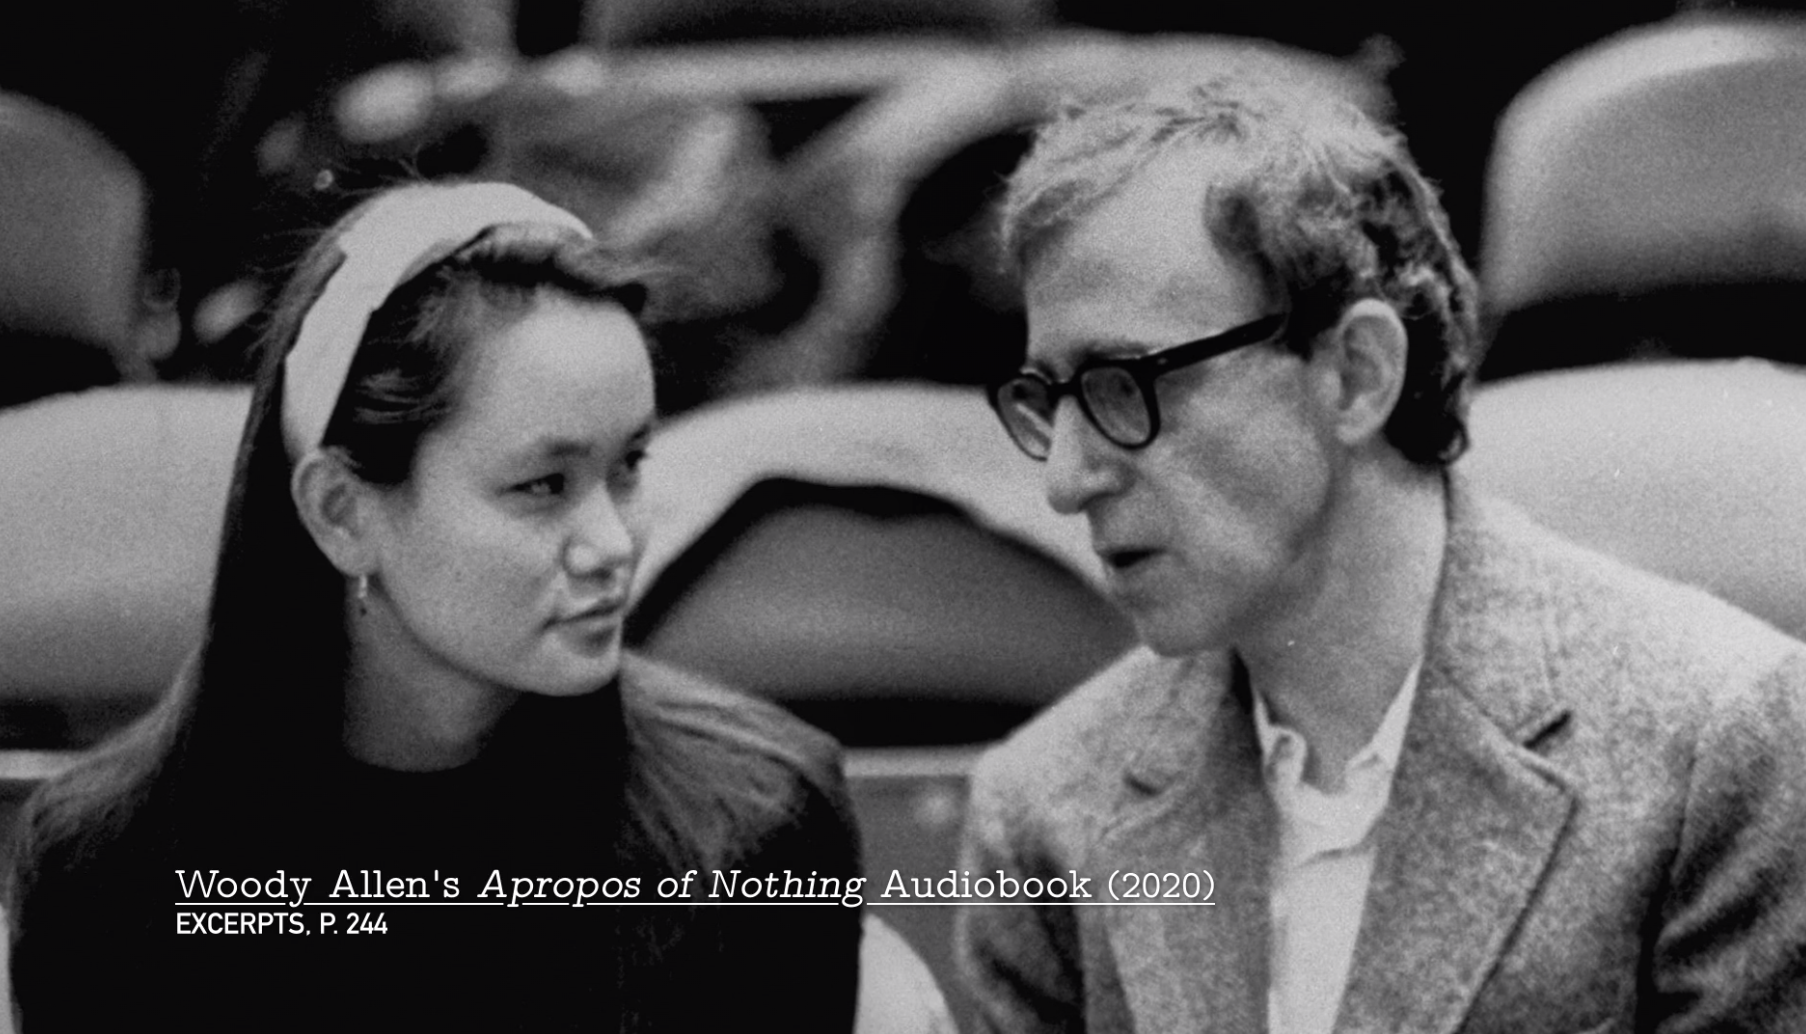 Soon-Yi and Woody Allen at a basketball game